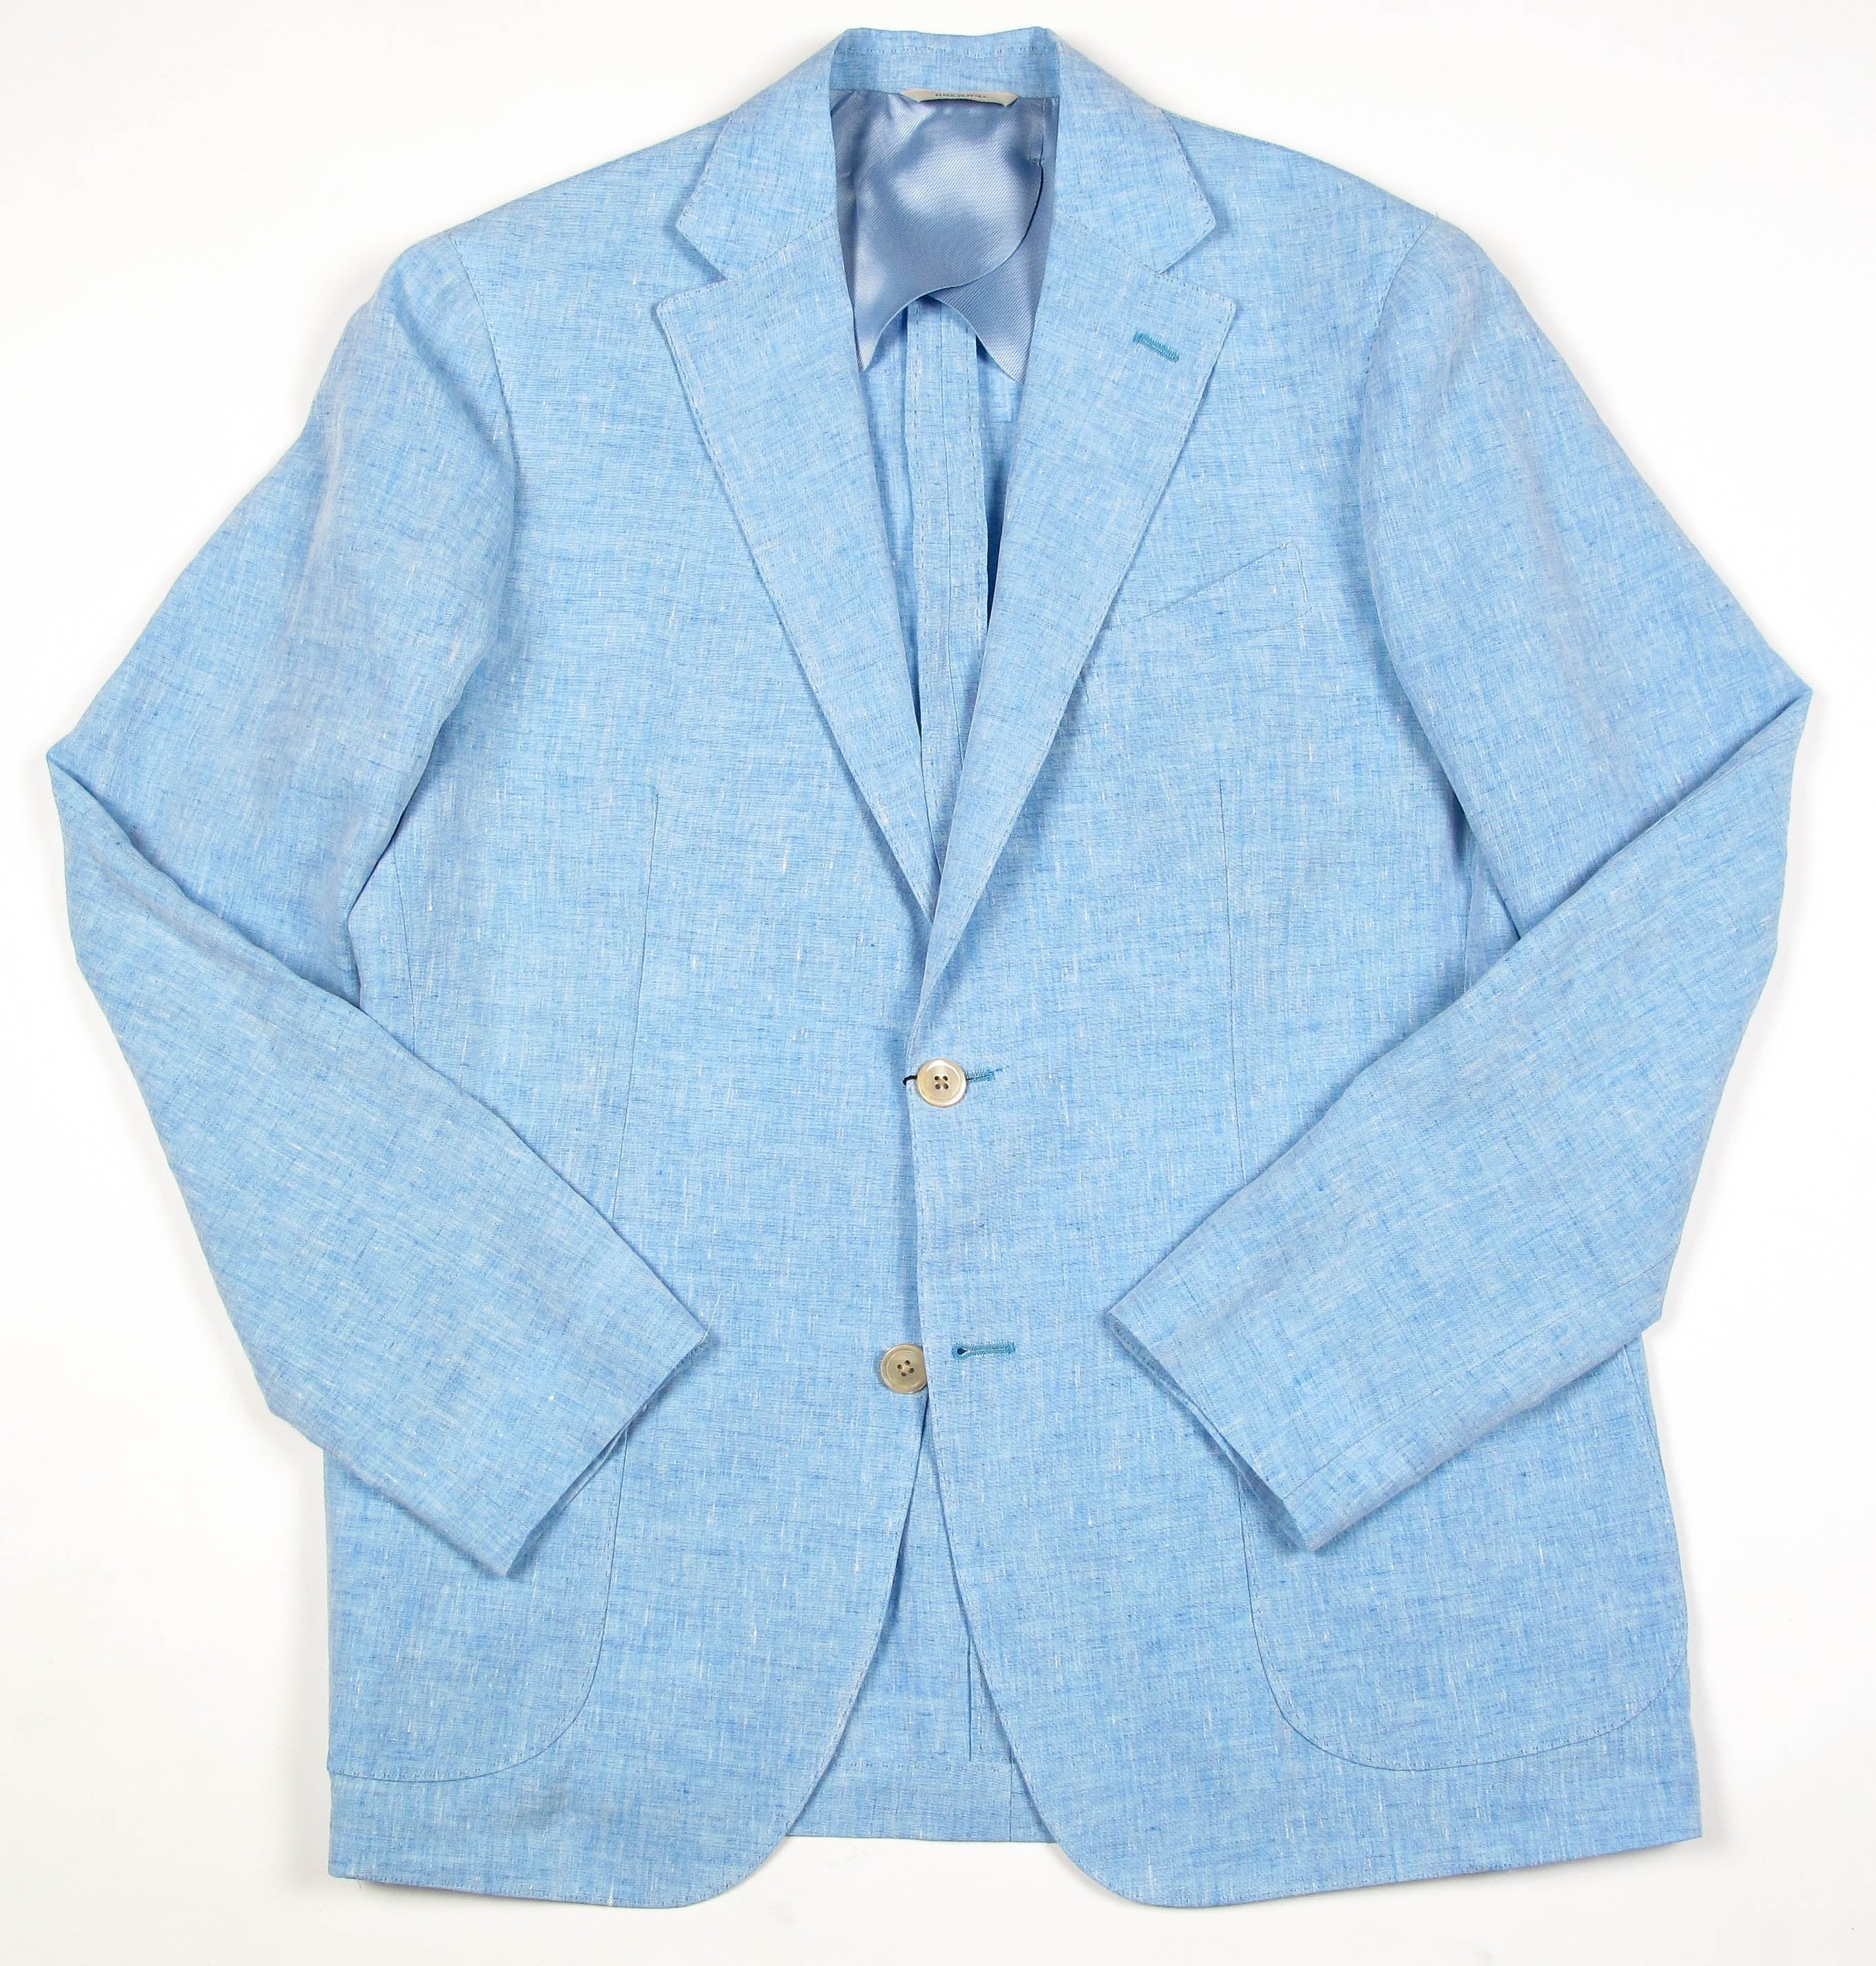 Soft Washed Tailored Linen Jacket